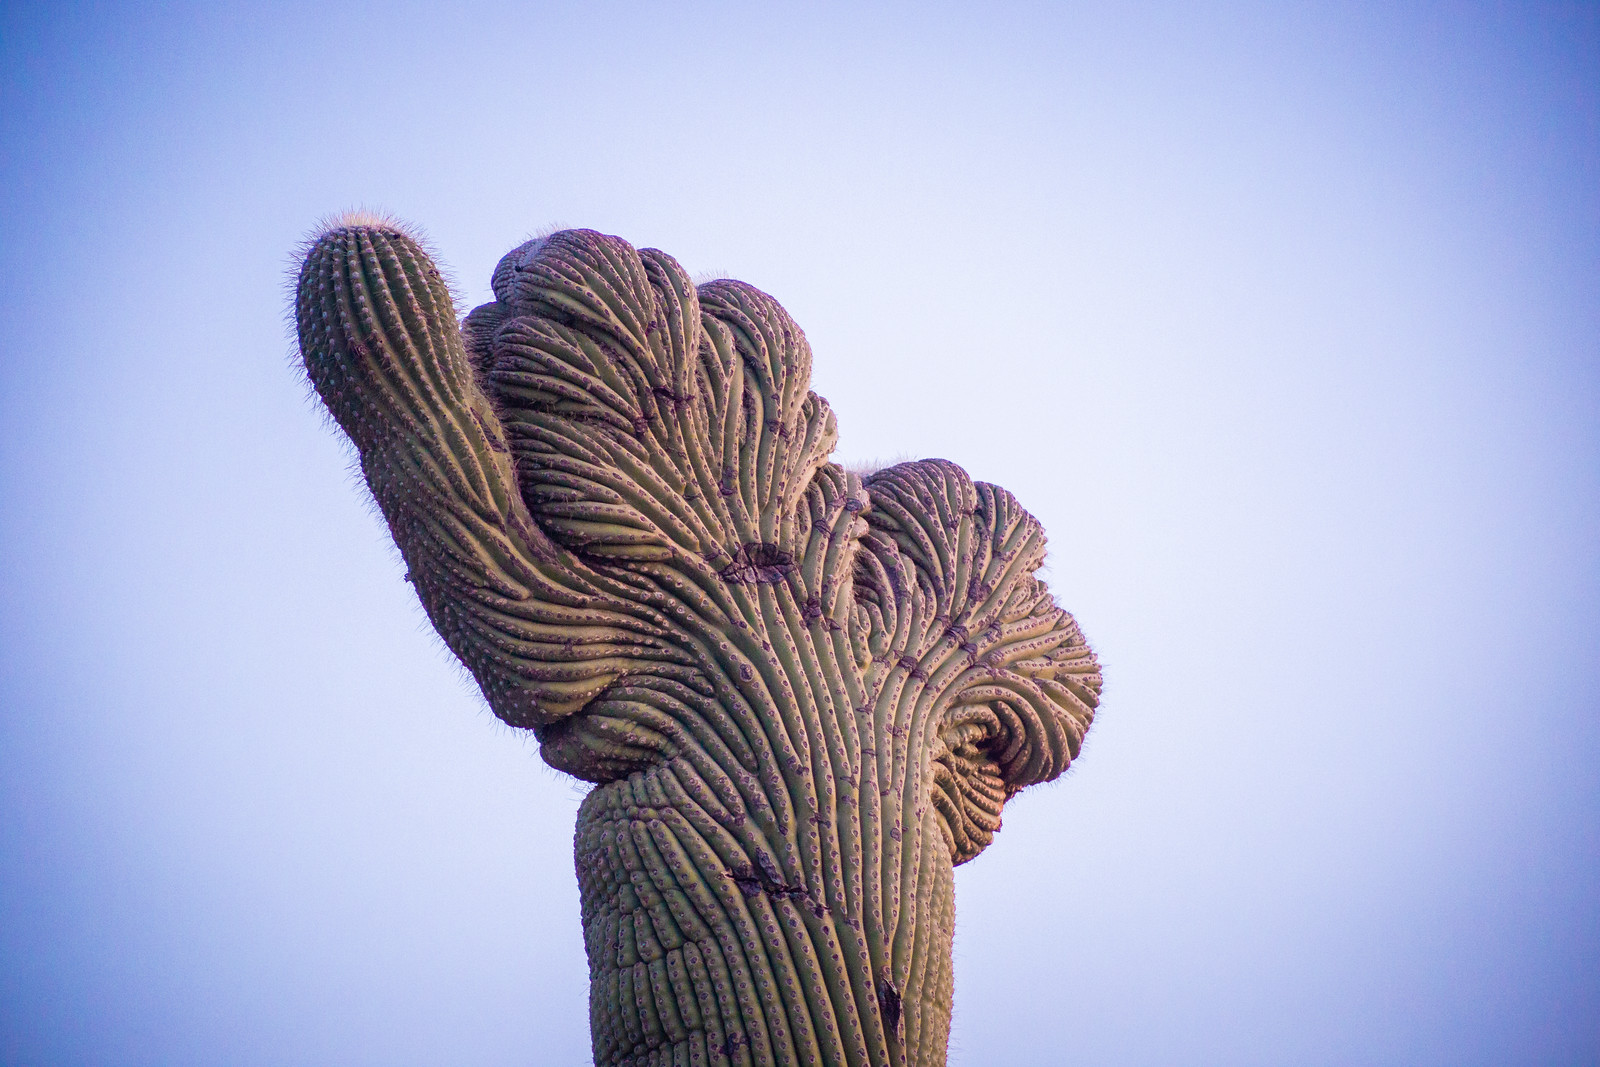 Crested Saguaro Saguaro National east